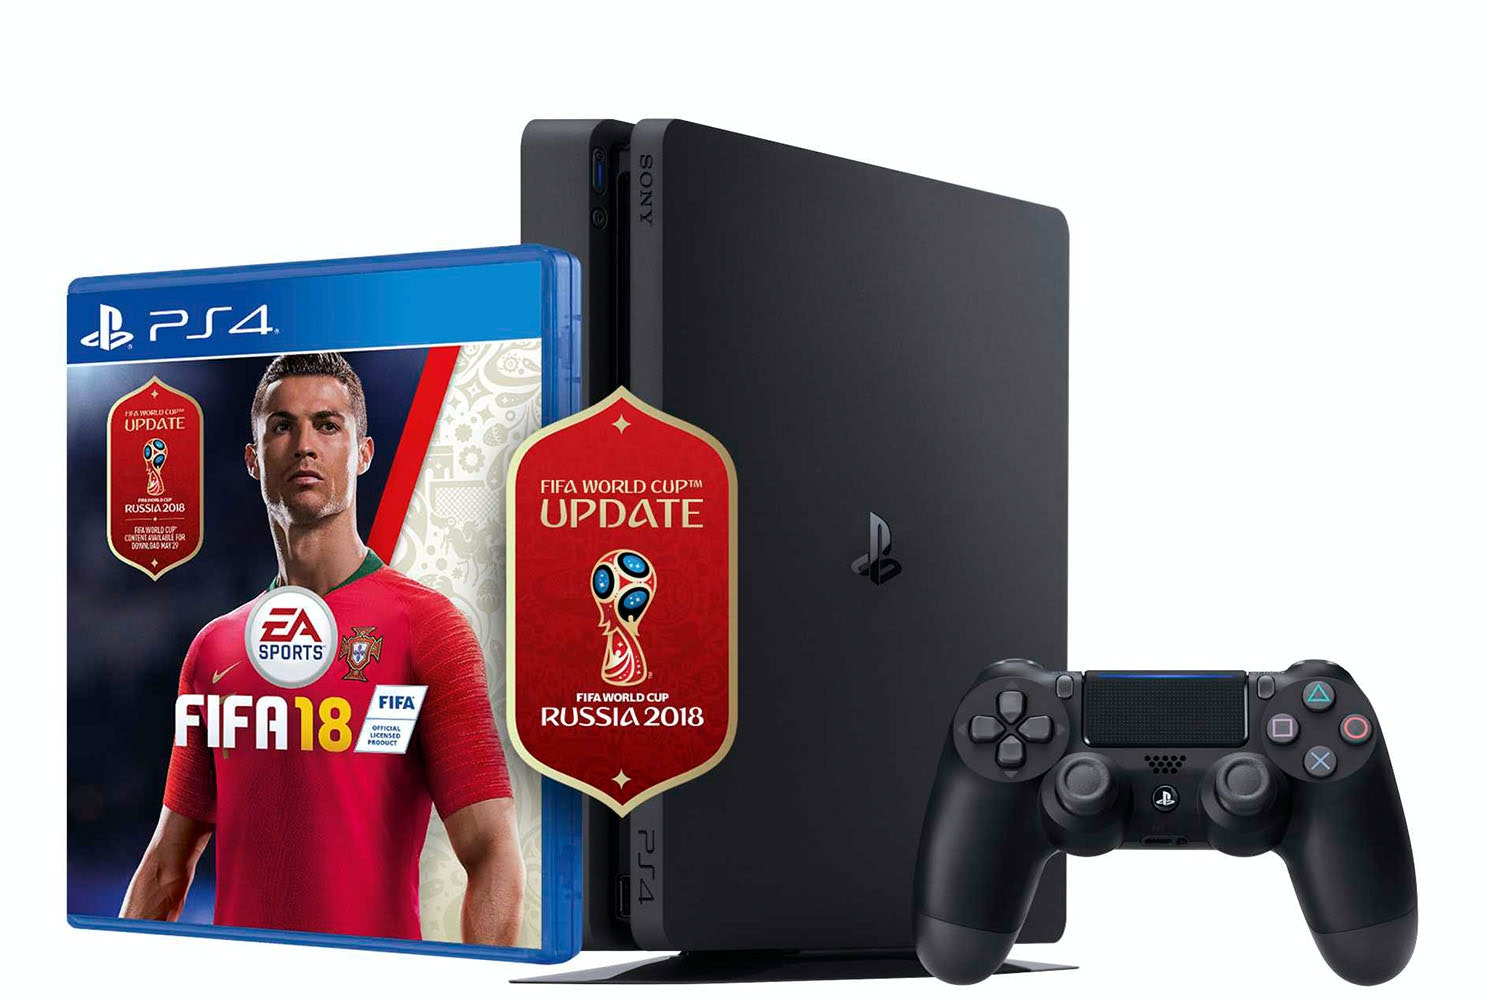 PS4 500GB Black with FIFA 18 World Cup edition